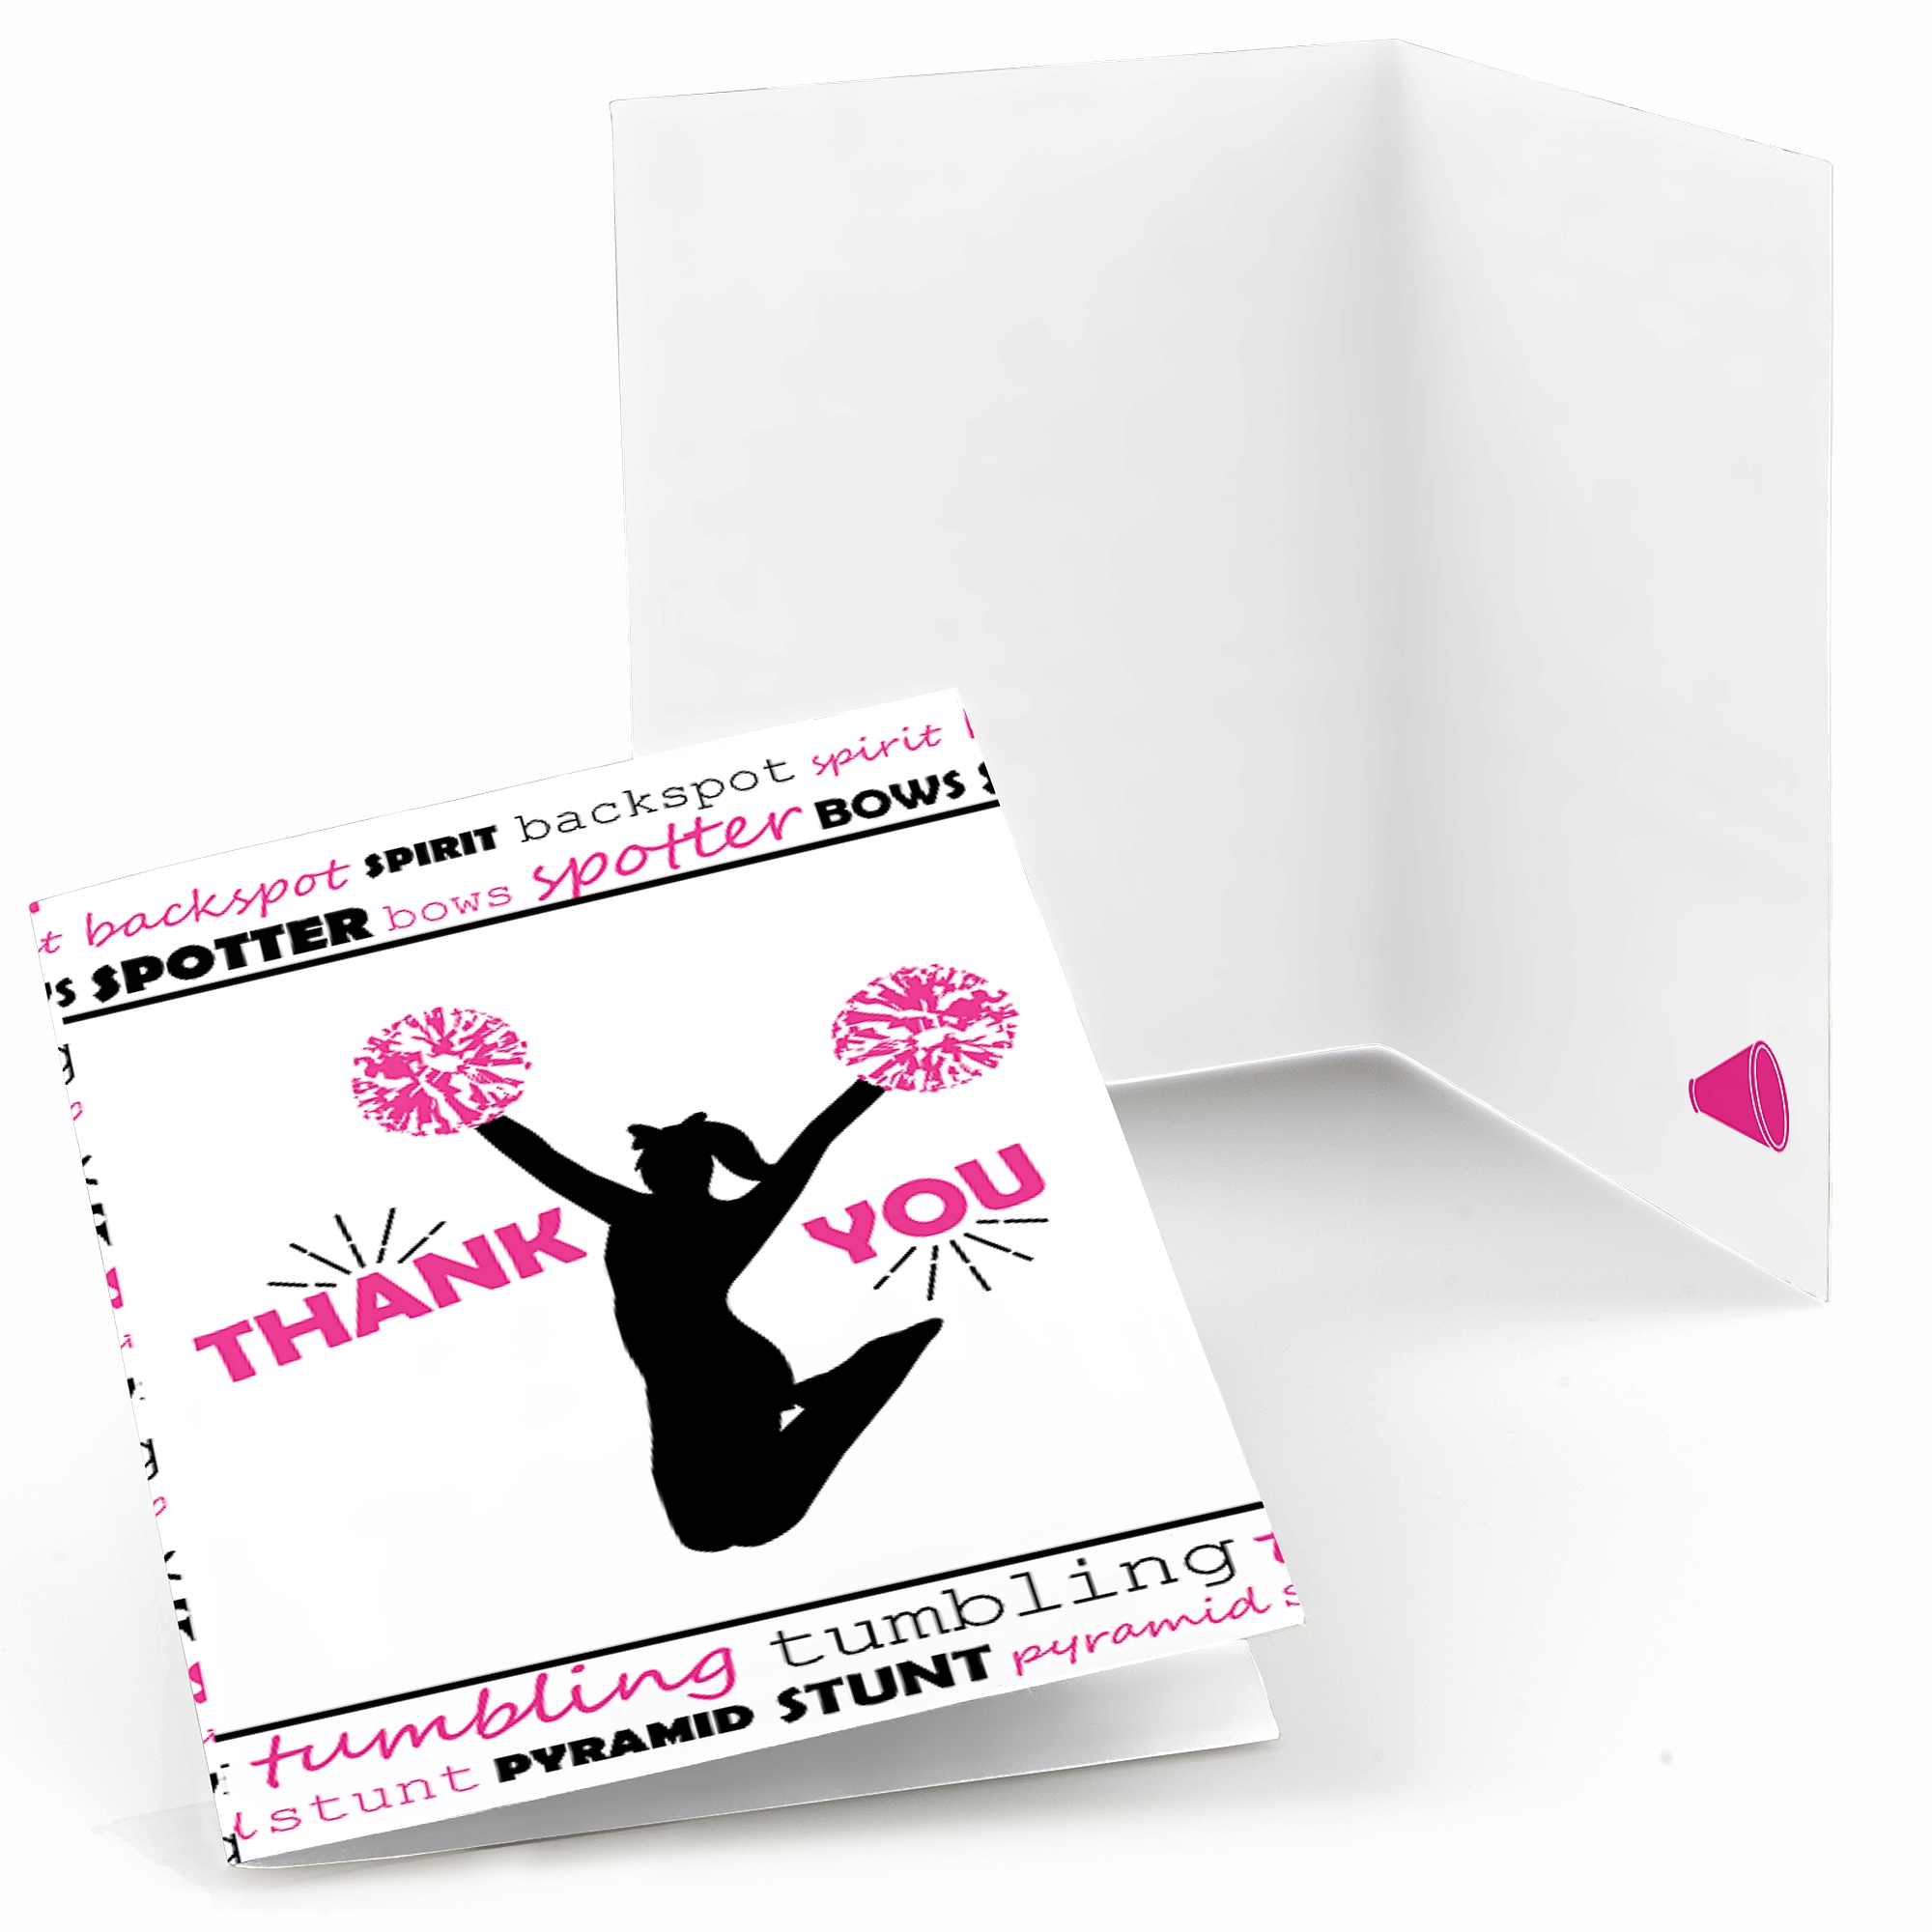 We've Got Spirit - Cheerleading - Birthday Party or Cheerleader Party Thank You Cards (8 count)